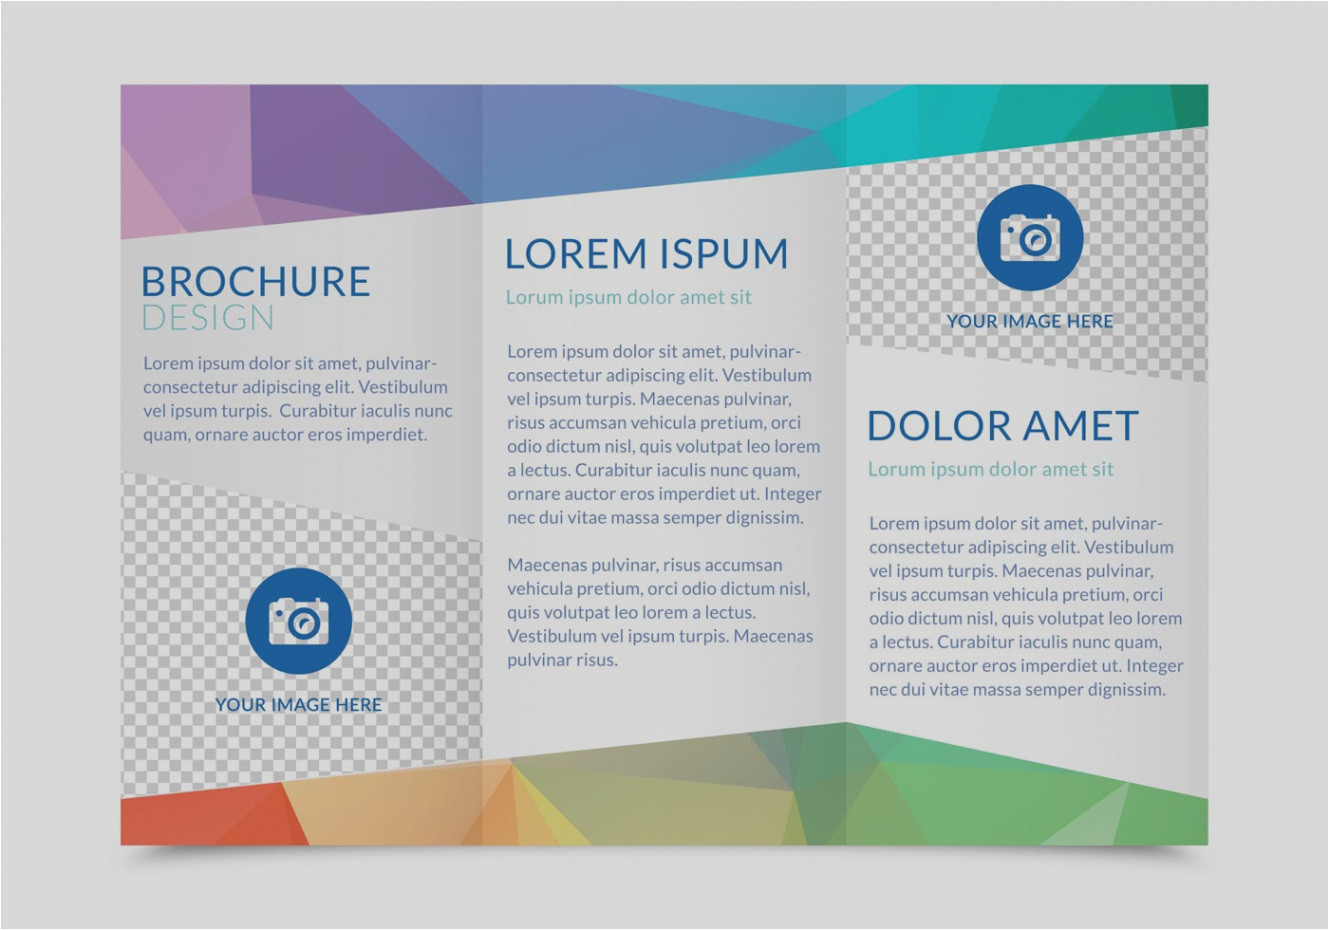 Free Brochure Template Downloads for Microsoft Word Images Free Tri Fold Brochure Templates for Microsoft Word